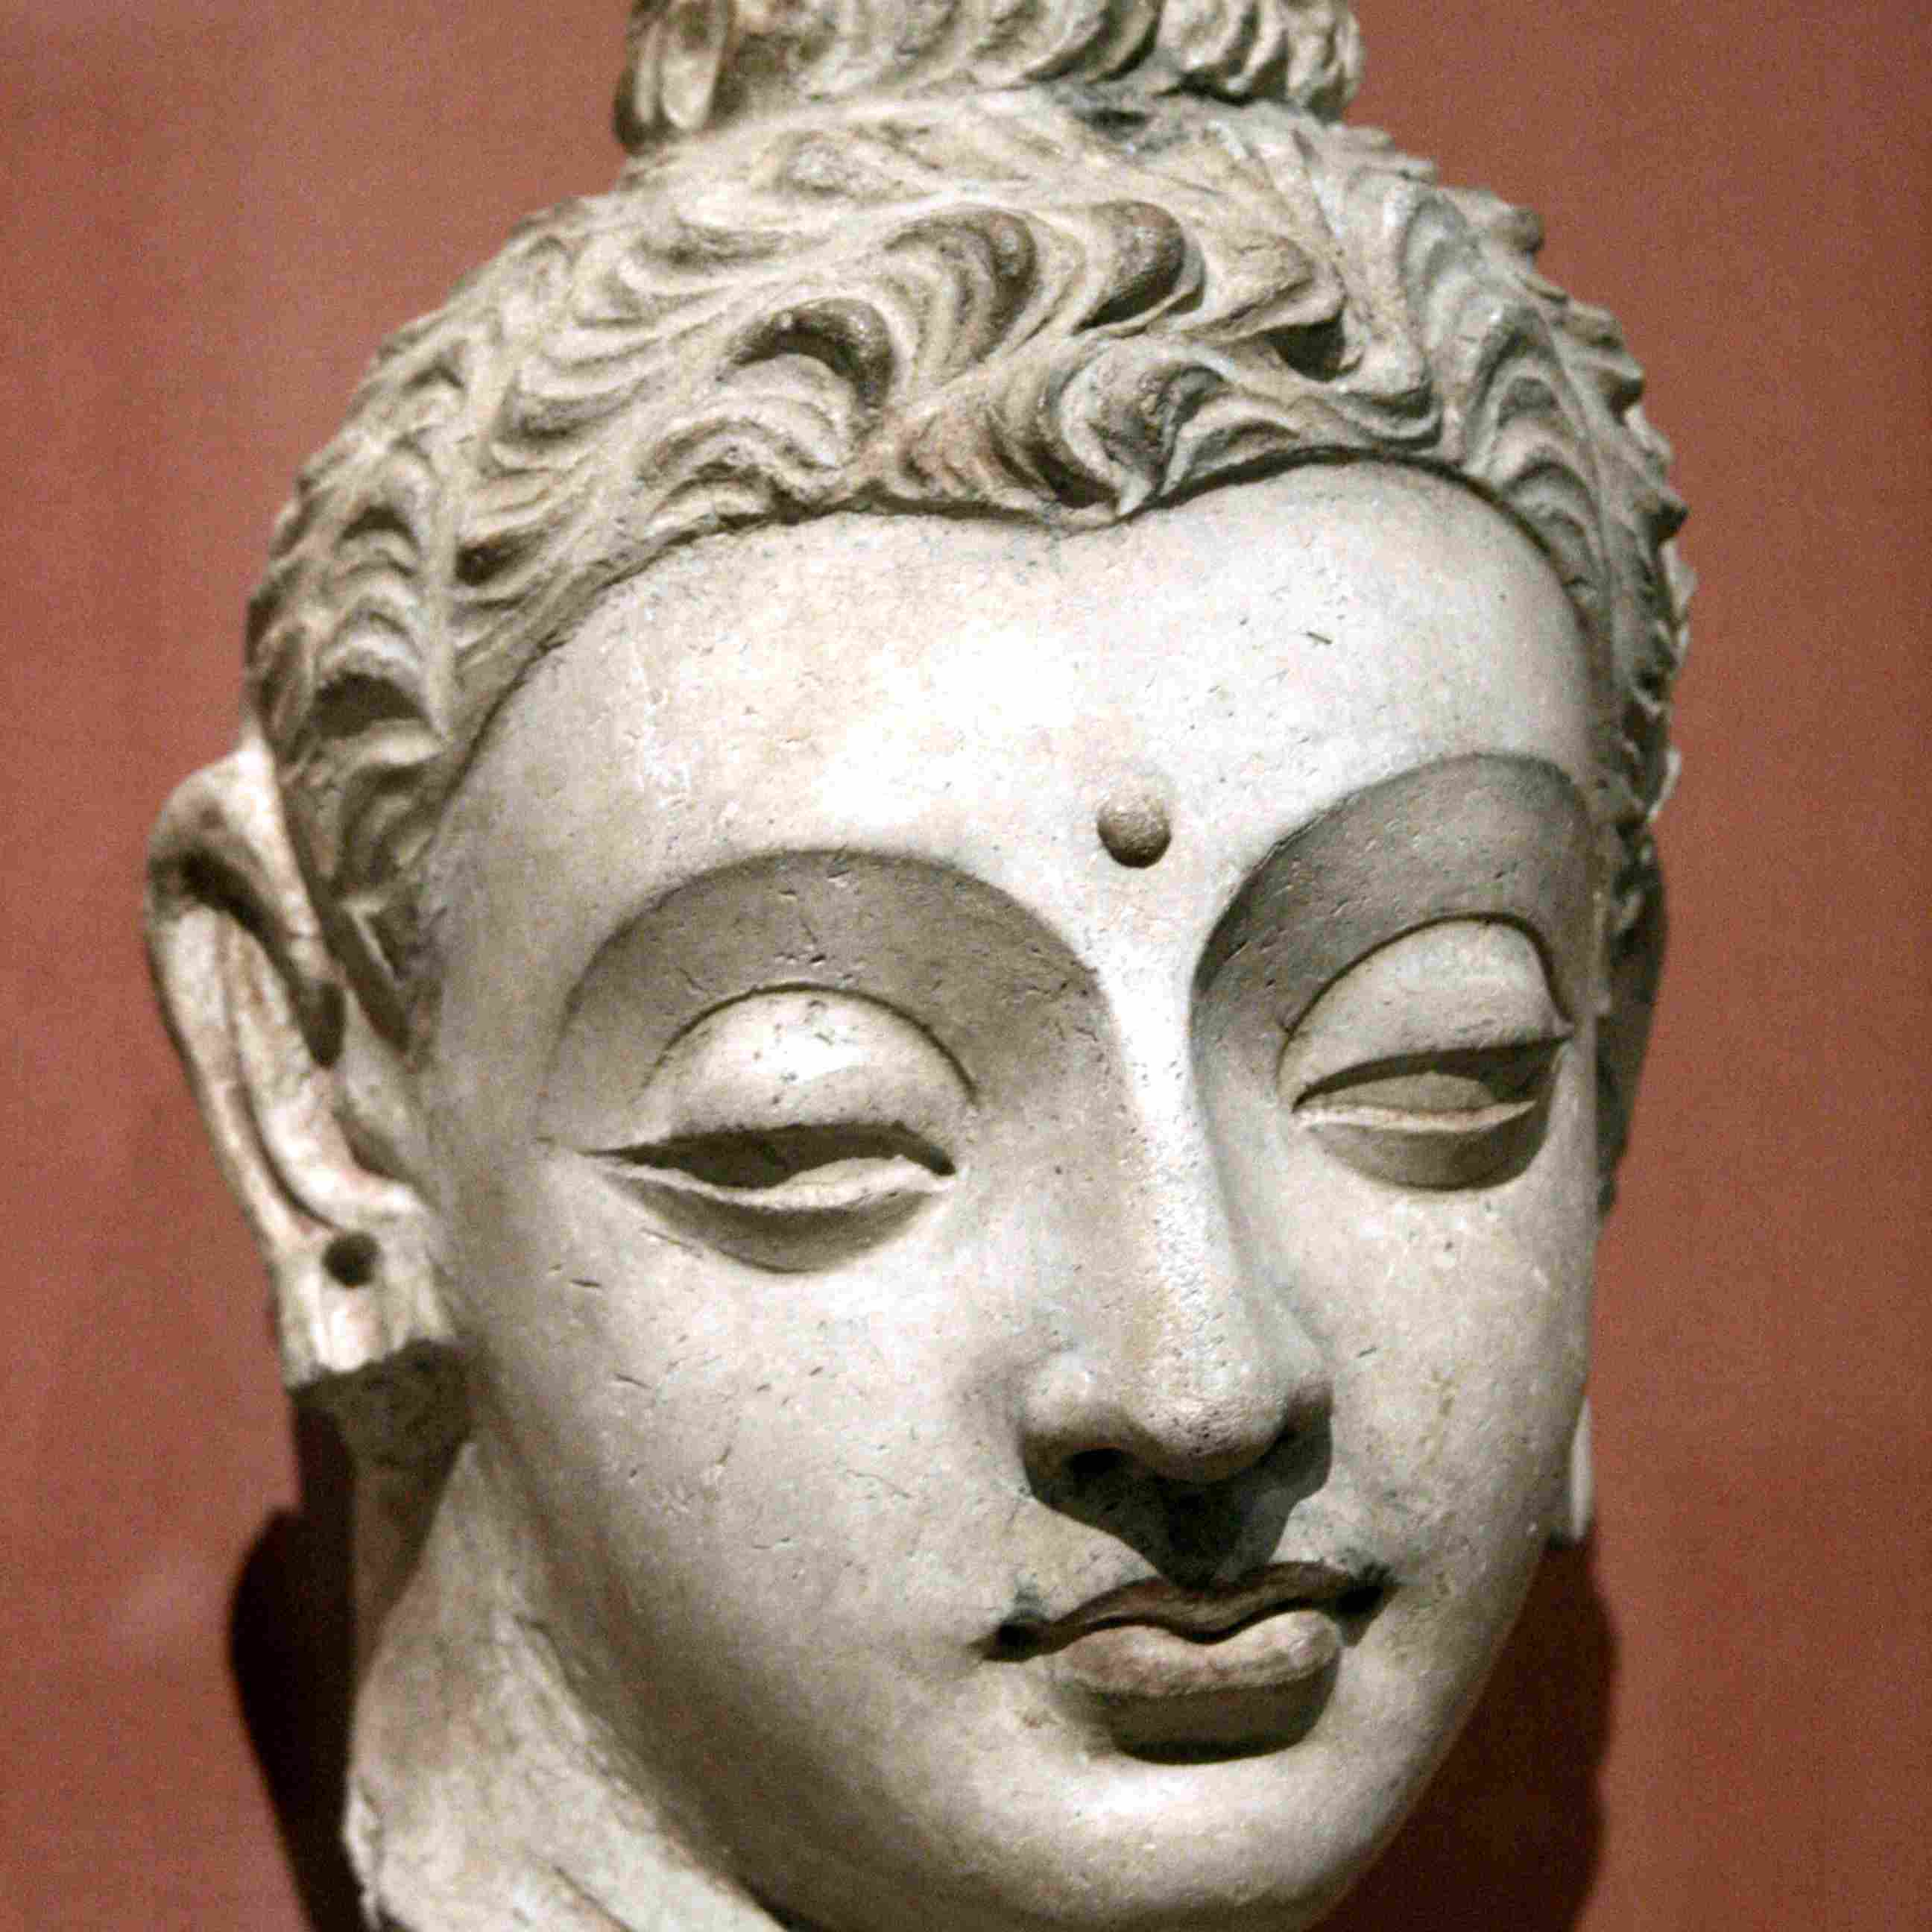 Head of Buddha from Afghanistan